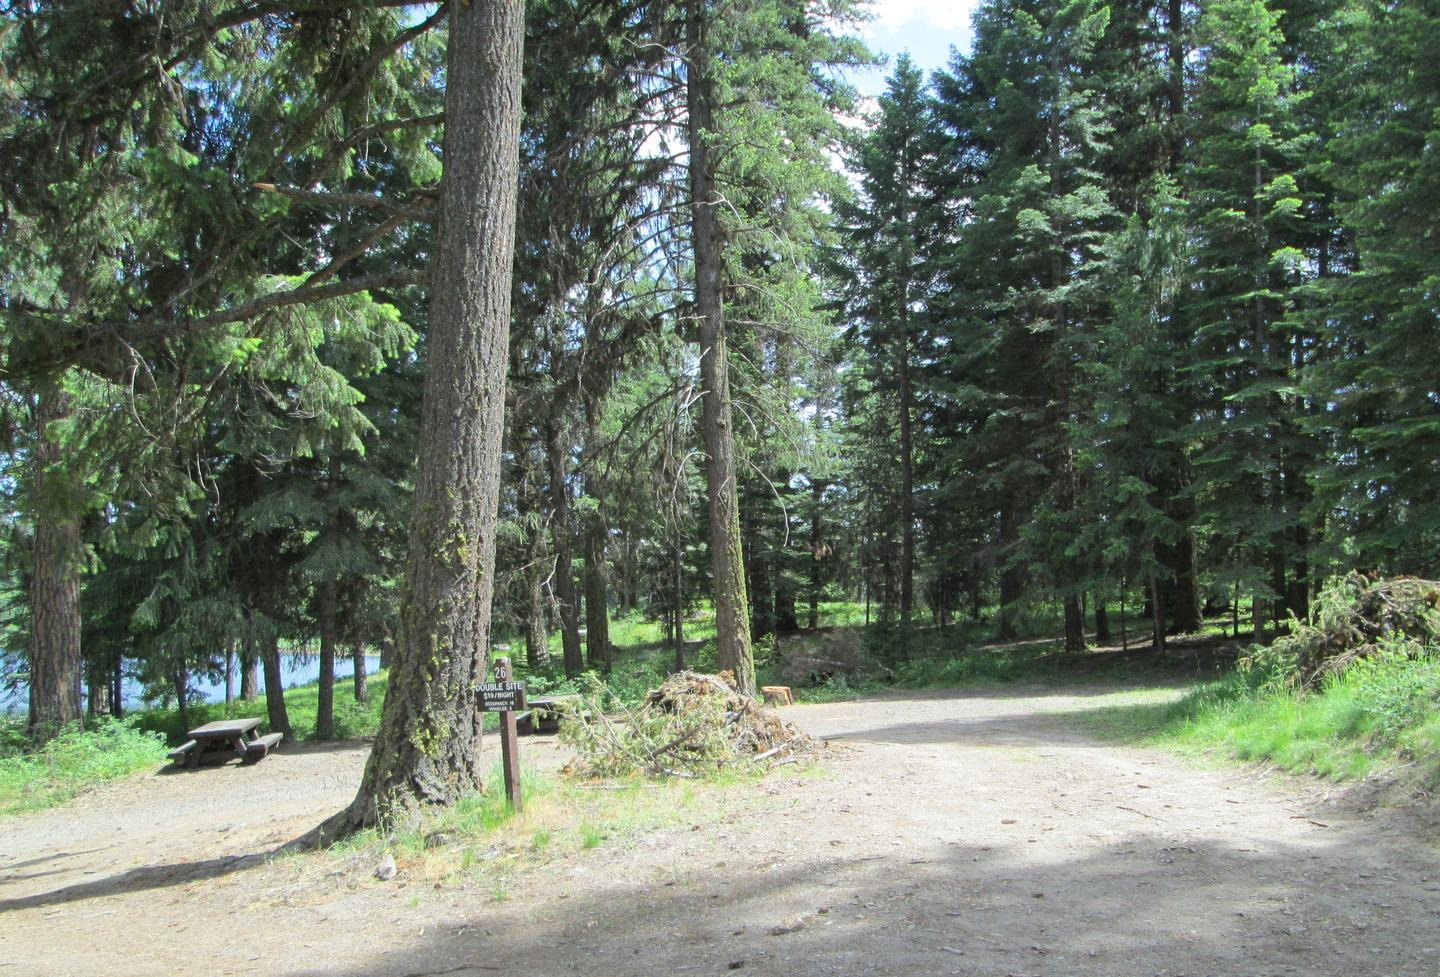 campsite parking area and entrance signBull Prairie Lake Campground site #26